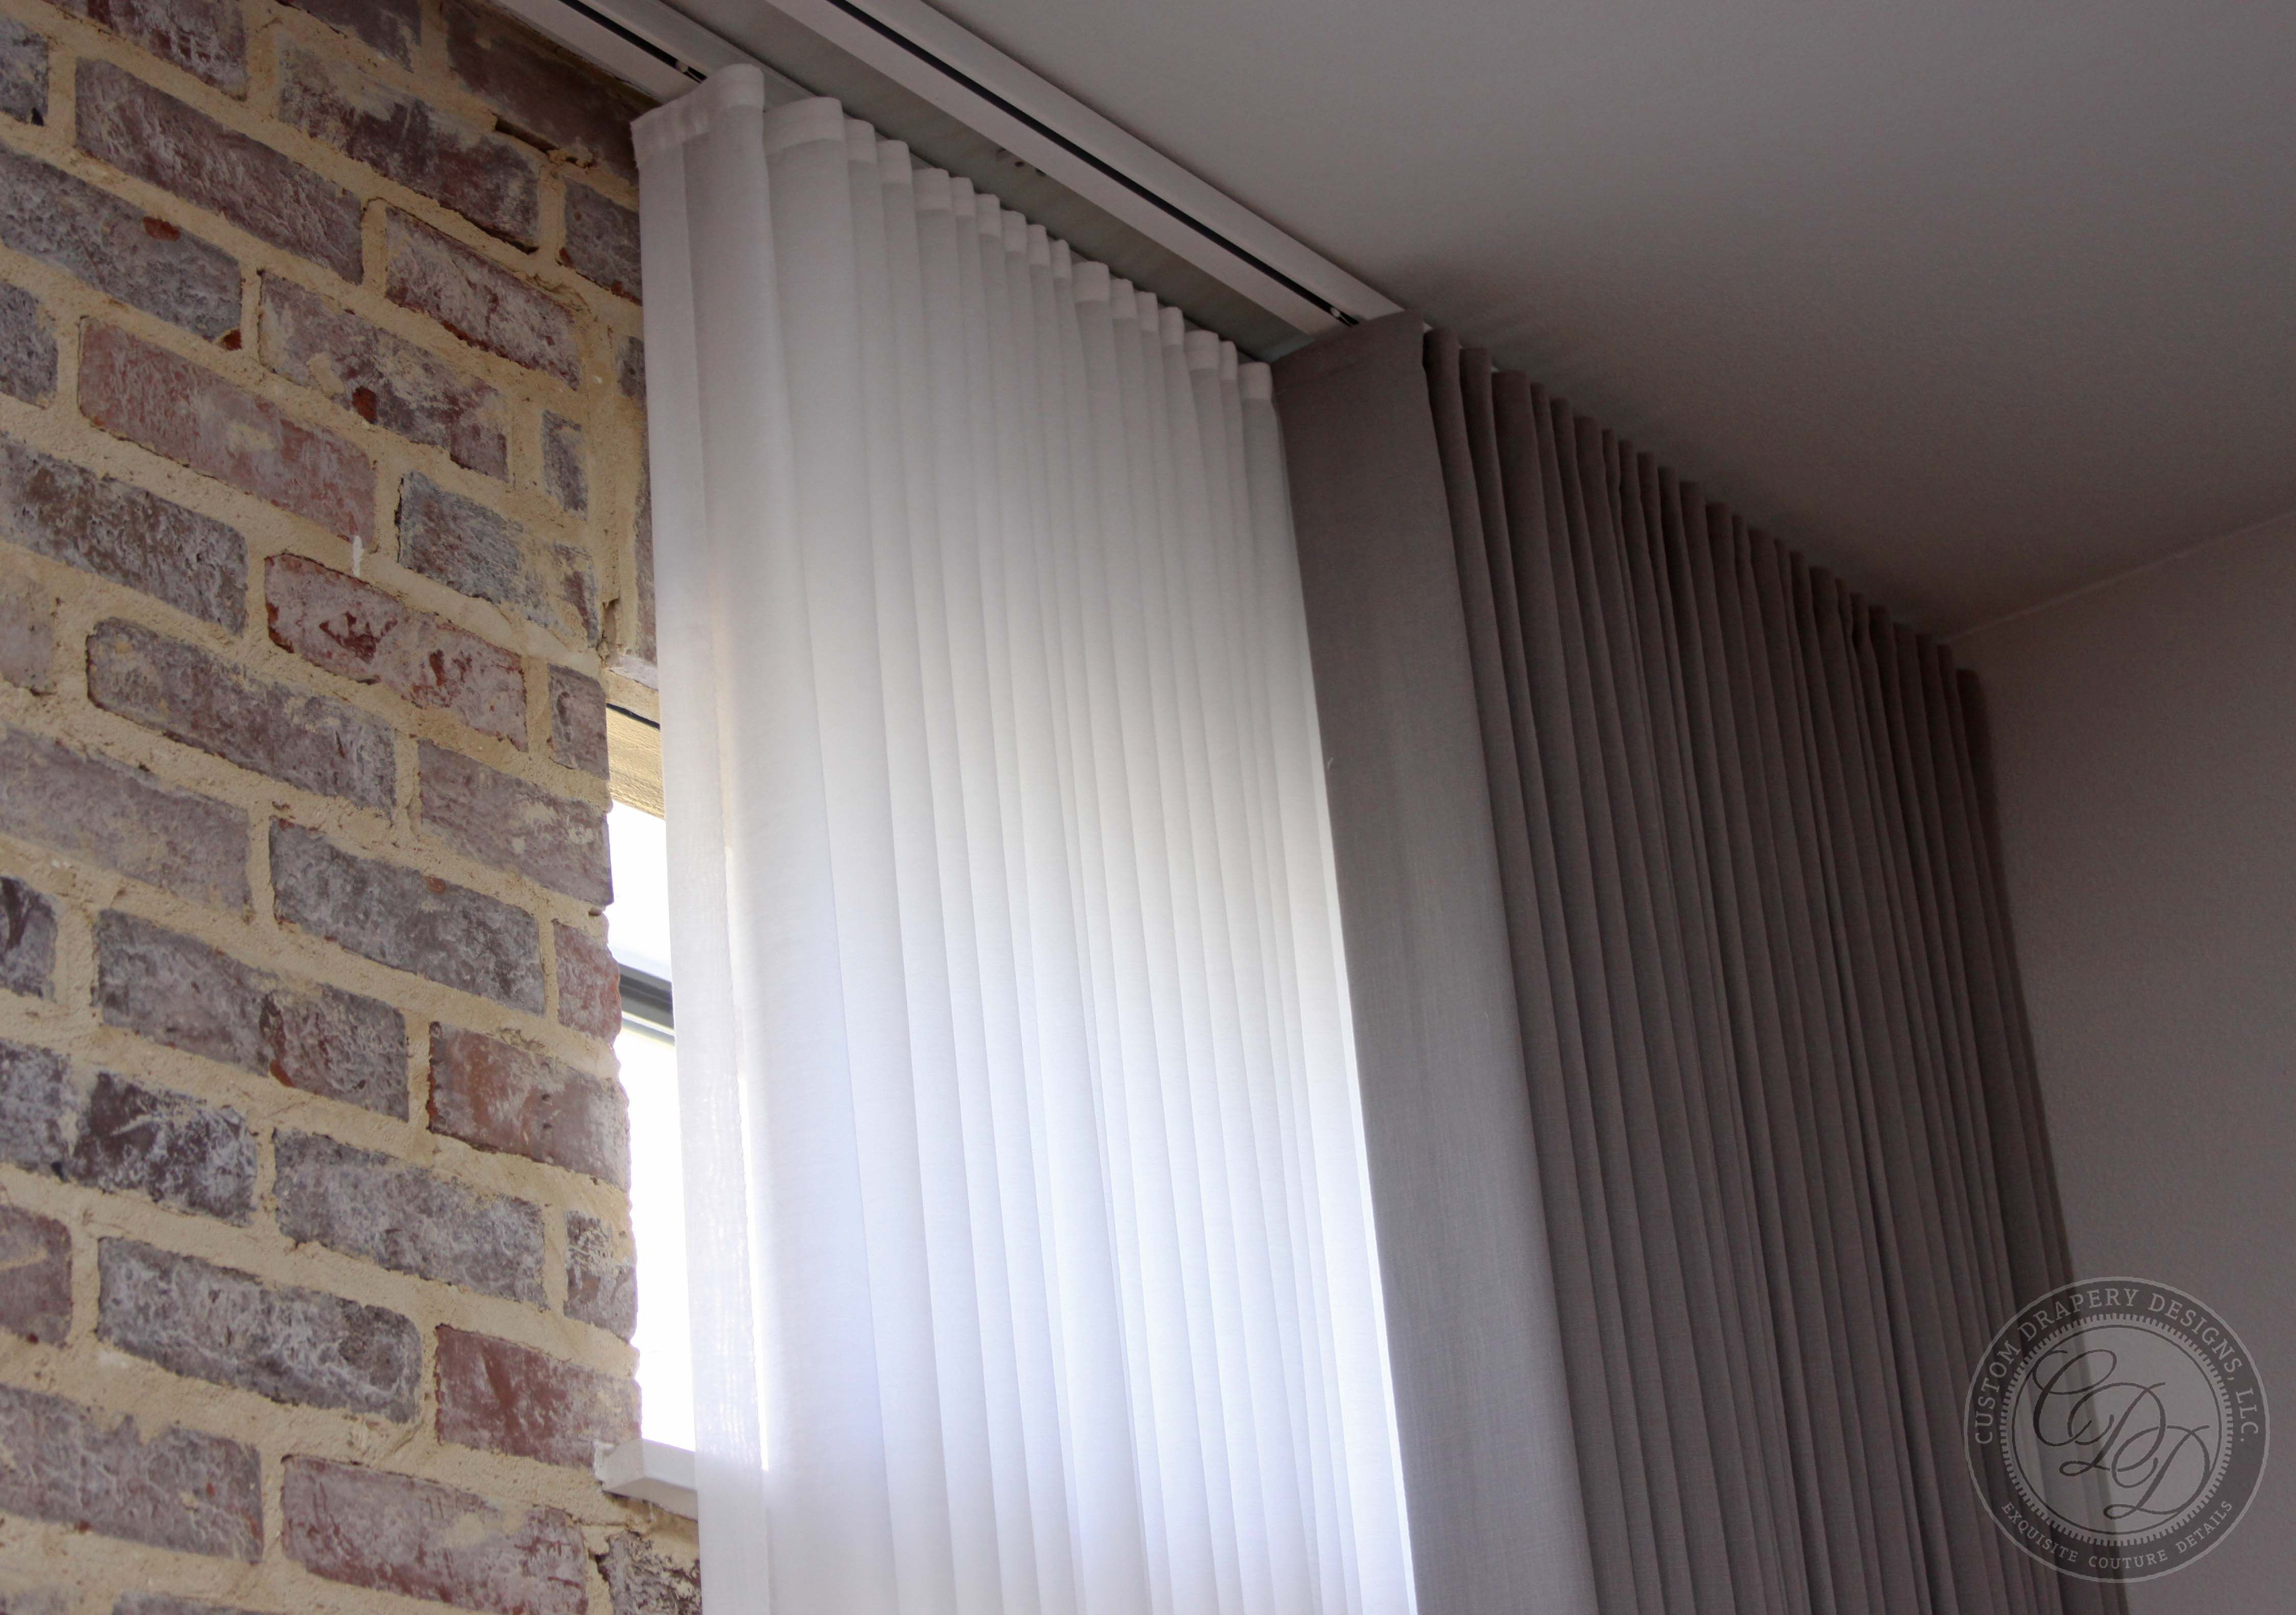 Ripplefold Drapery Modern Ripplefold Drapery Installed In A Downtown Dallas